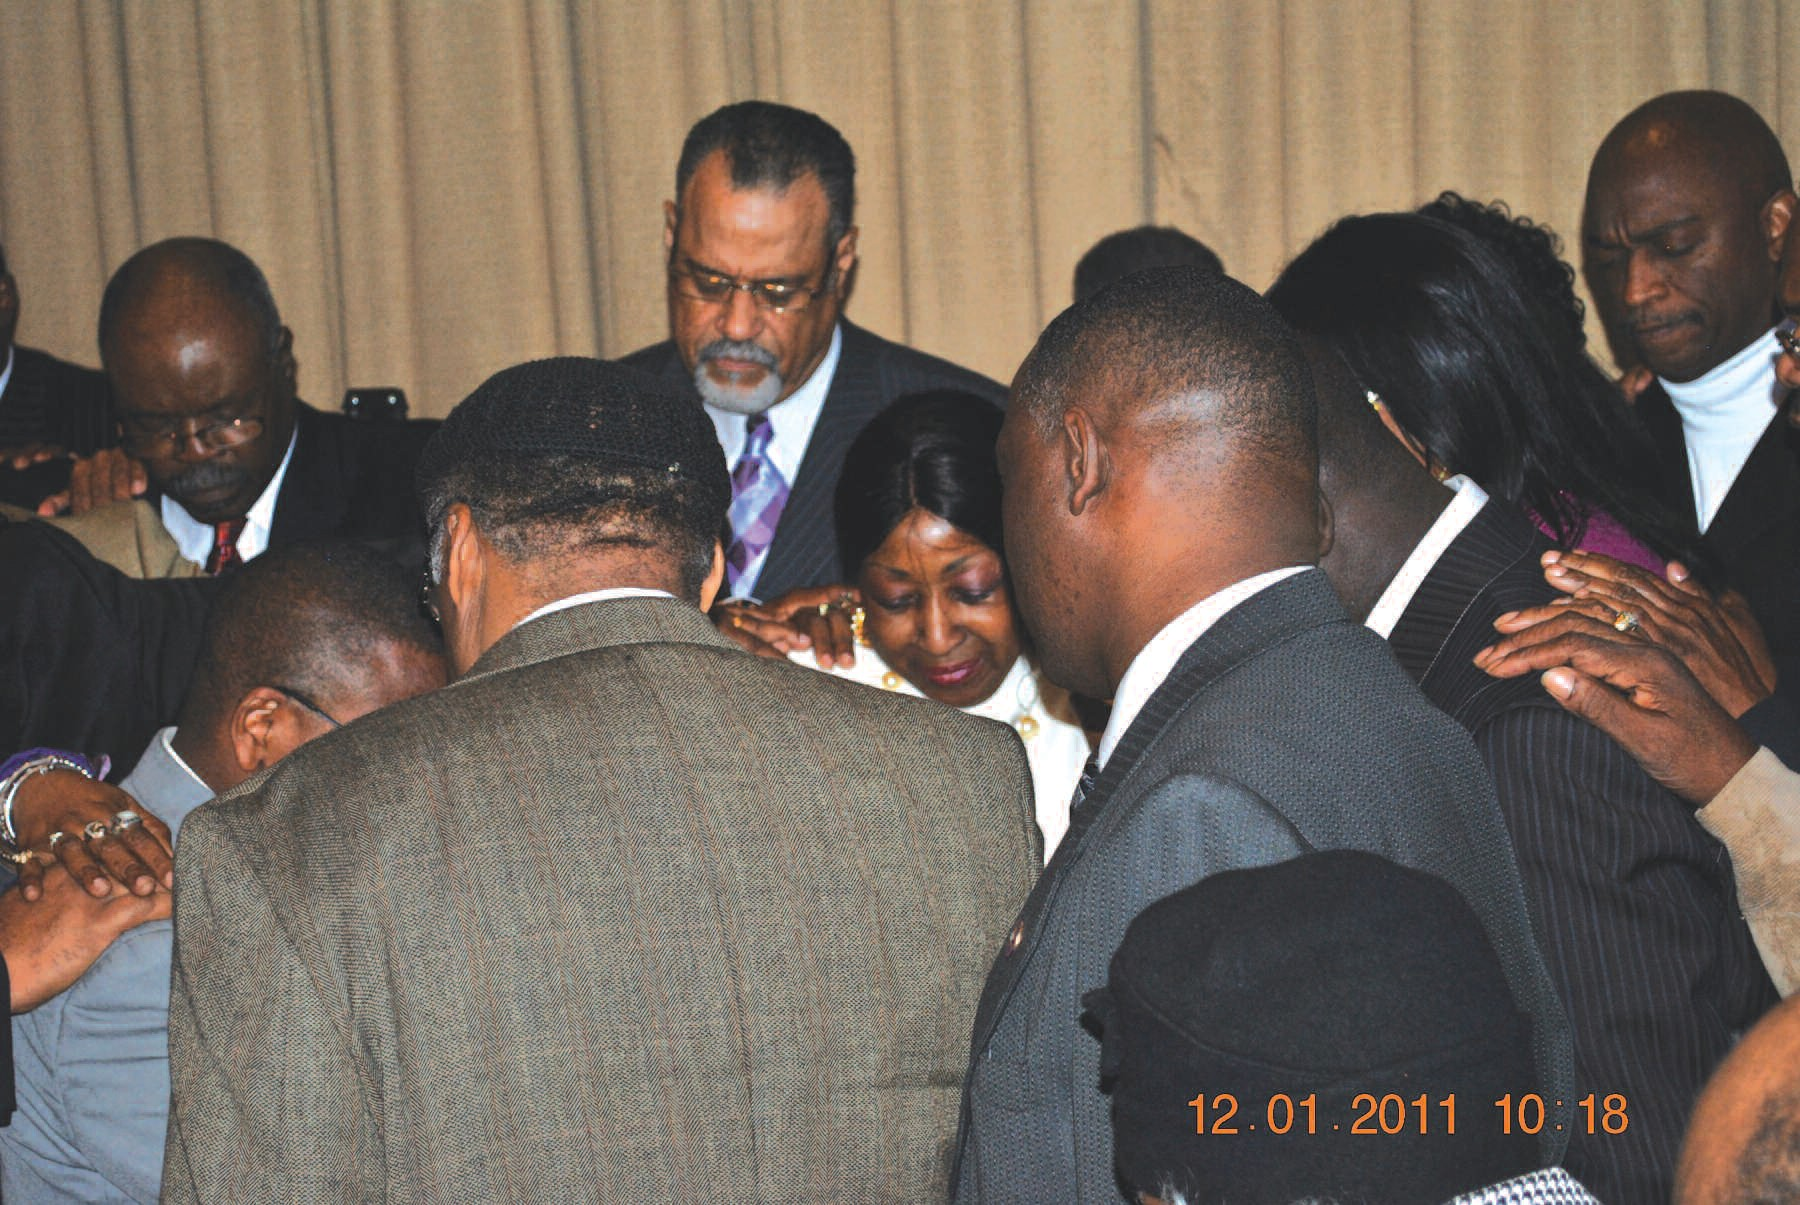 Jackson is surrounded by local ministers as they lift her in prayer